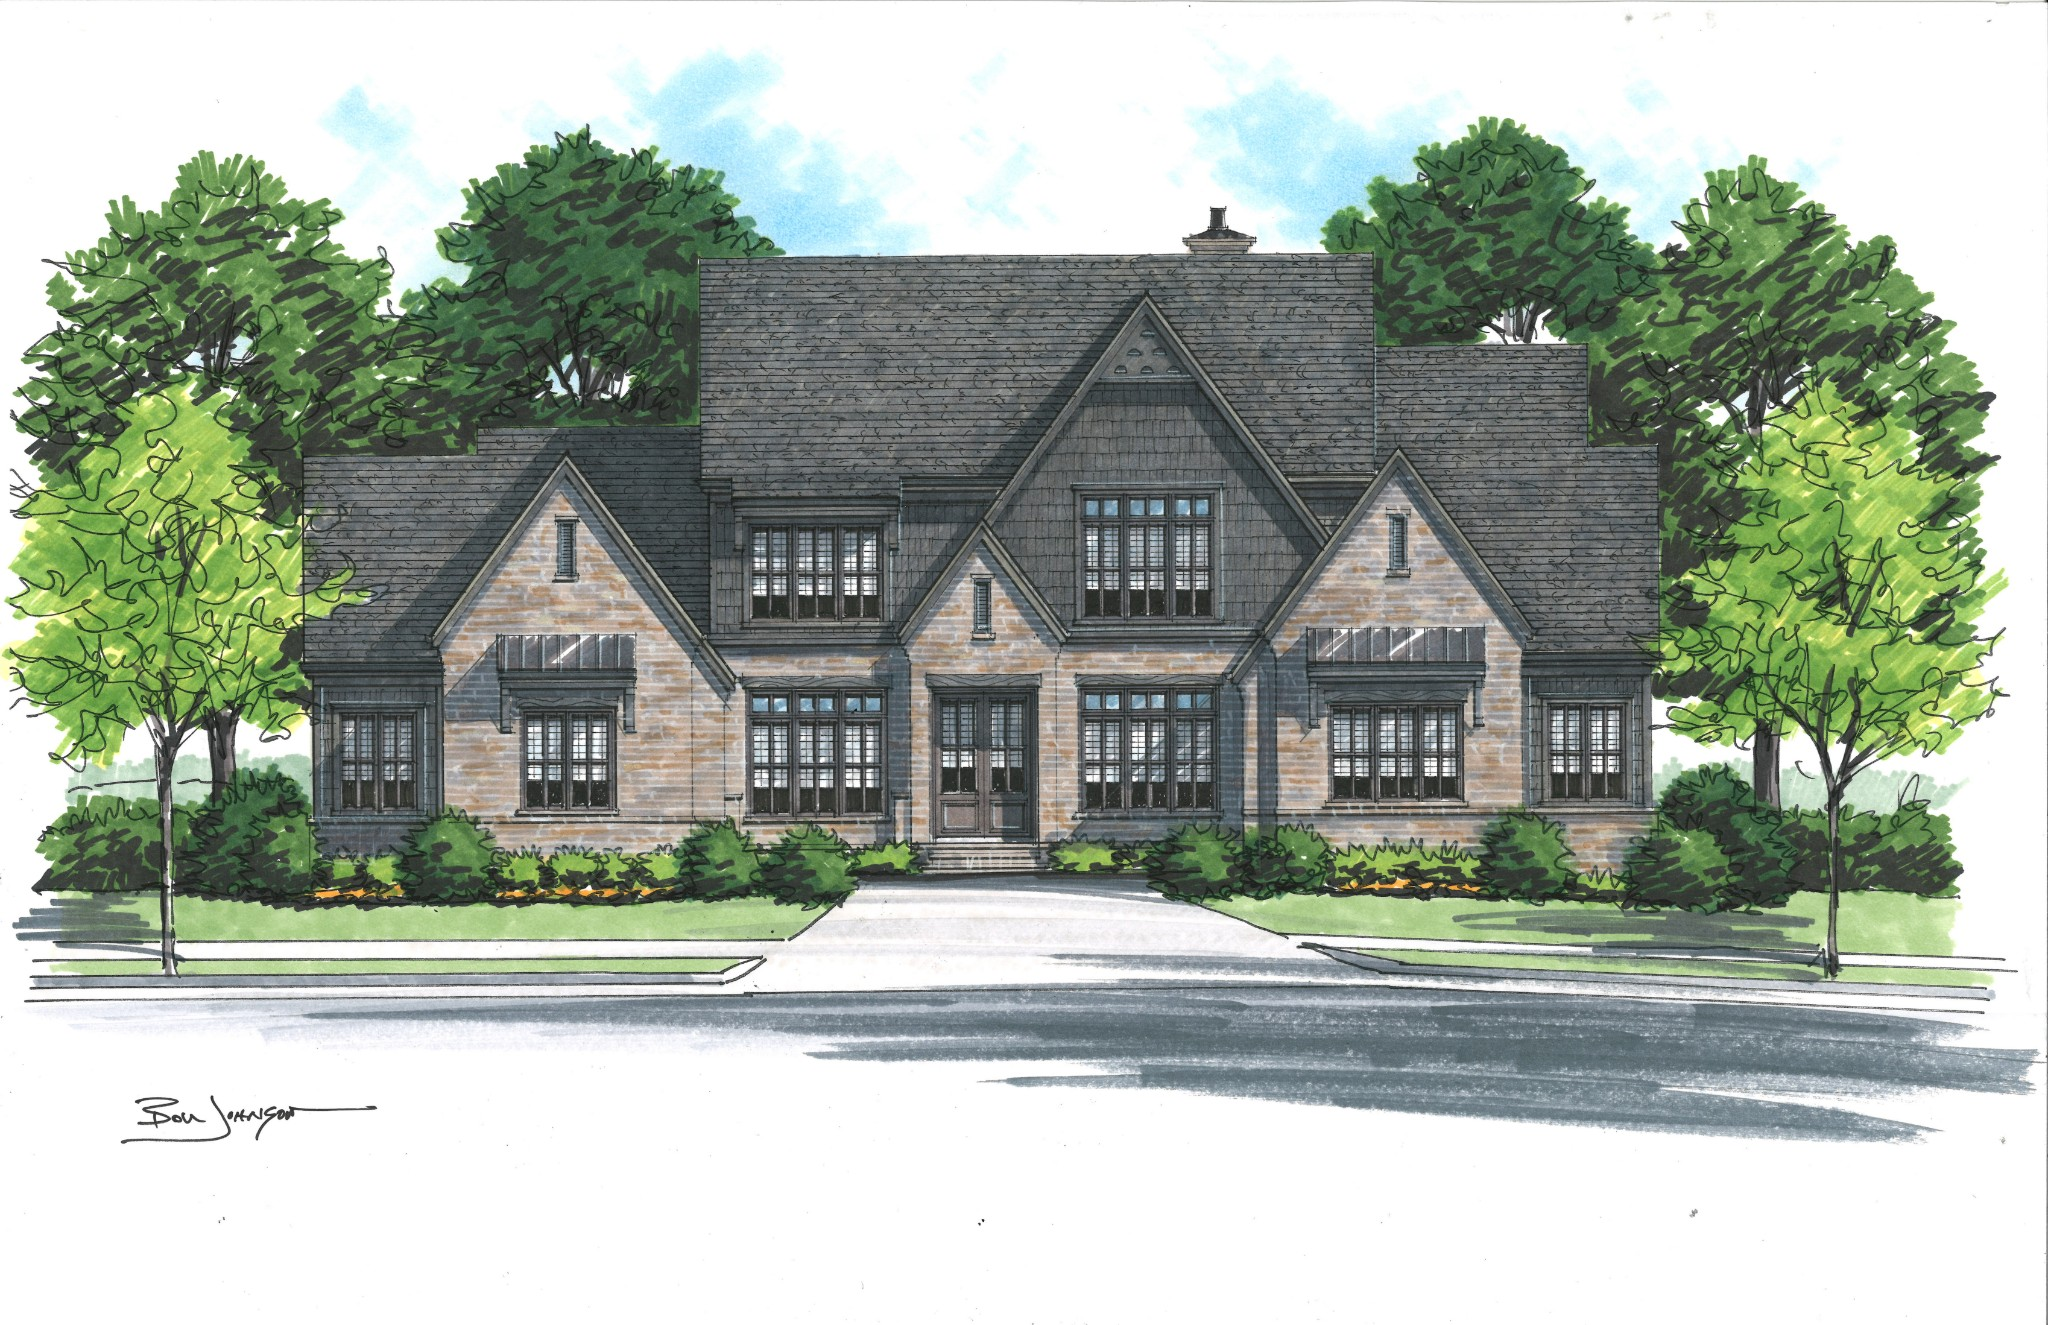 """Legend Homes Stunner includes carriage-front garage court, natural brick with dark siding accents and Contemporary Tudor finishes throughout! Updated interiors surround your family with the latest quartz tops, Wolf appliance package, bar service, MBR on the main and extended covered Loggia overlooking private open space and forests! Now underway for summer 2021 completion!"""""""